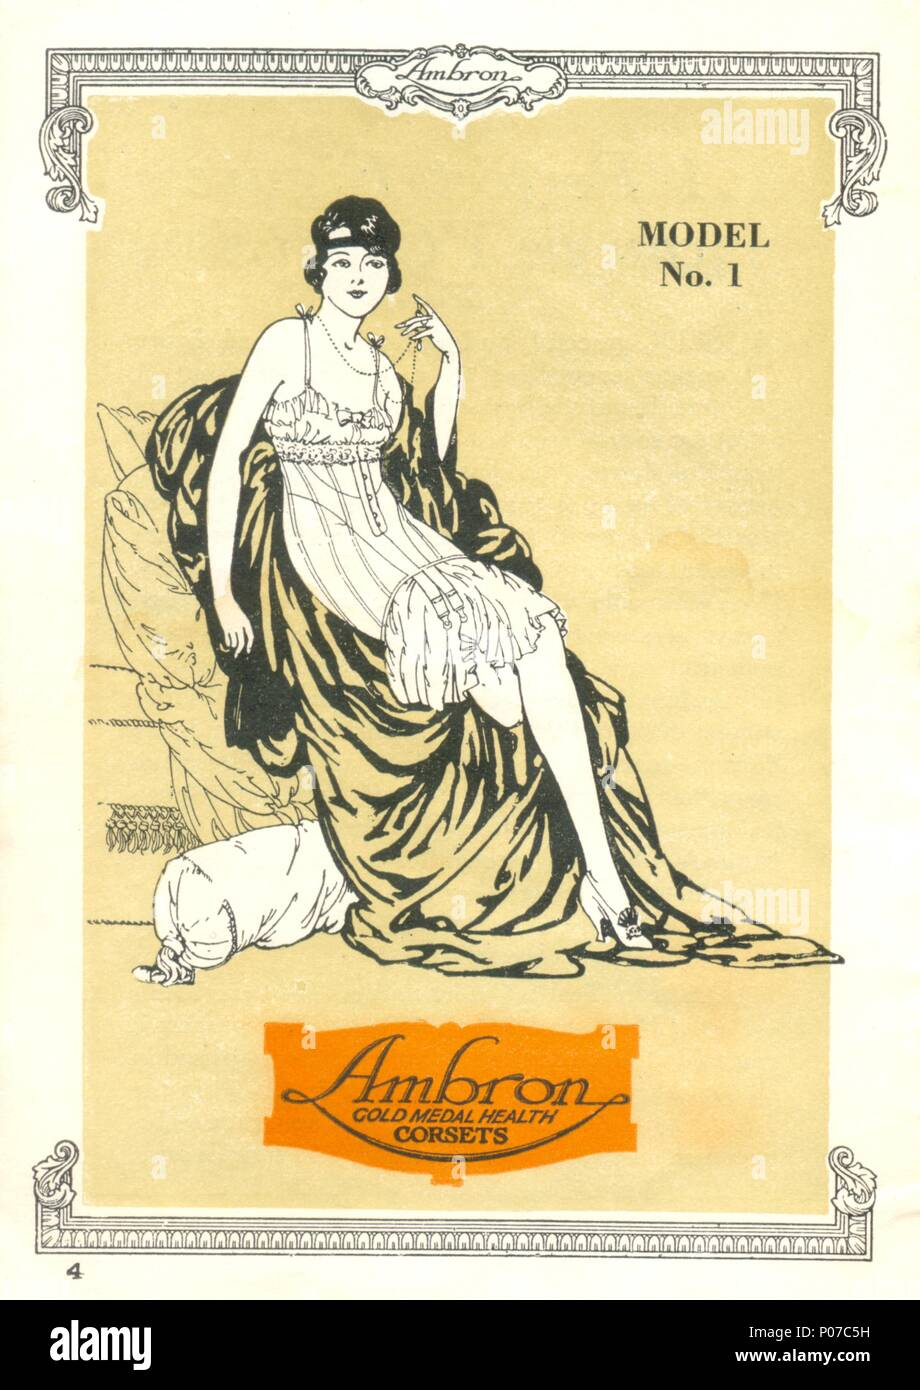 Model No. 1 from Ambron Gold medal Health Corsets - Stock Image